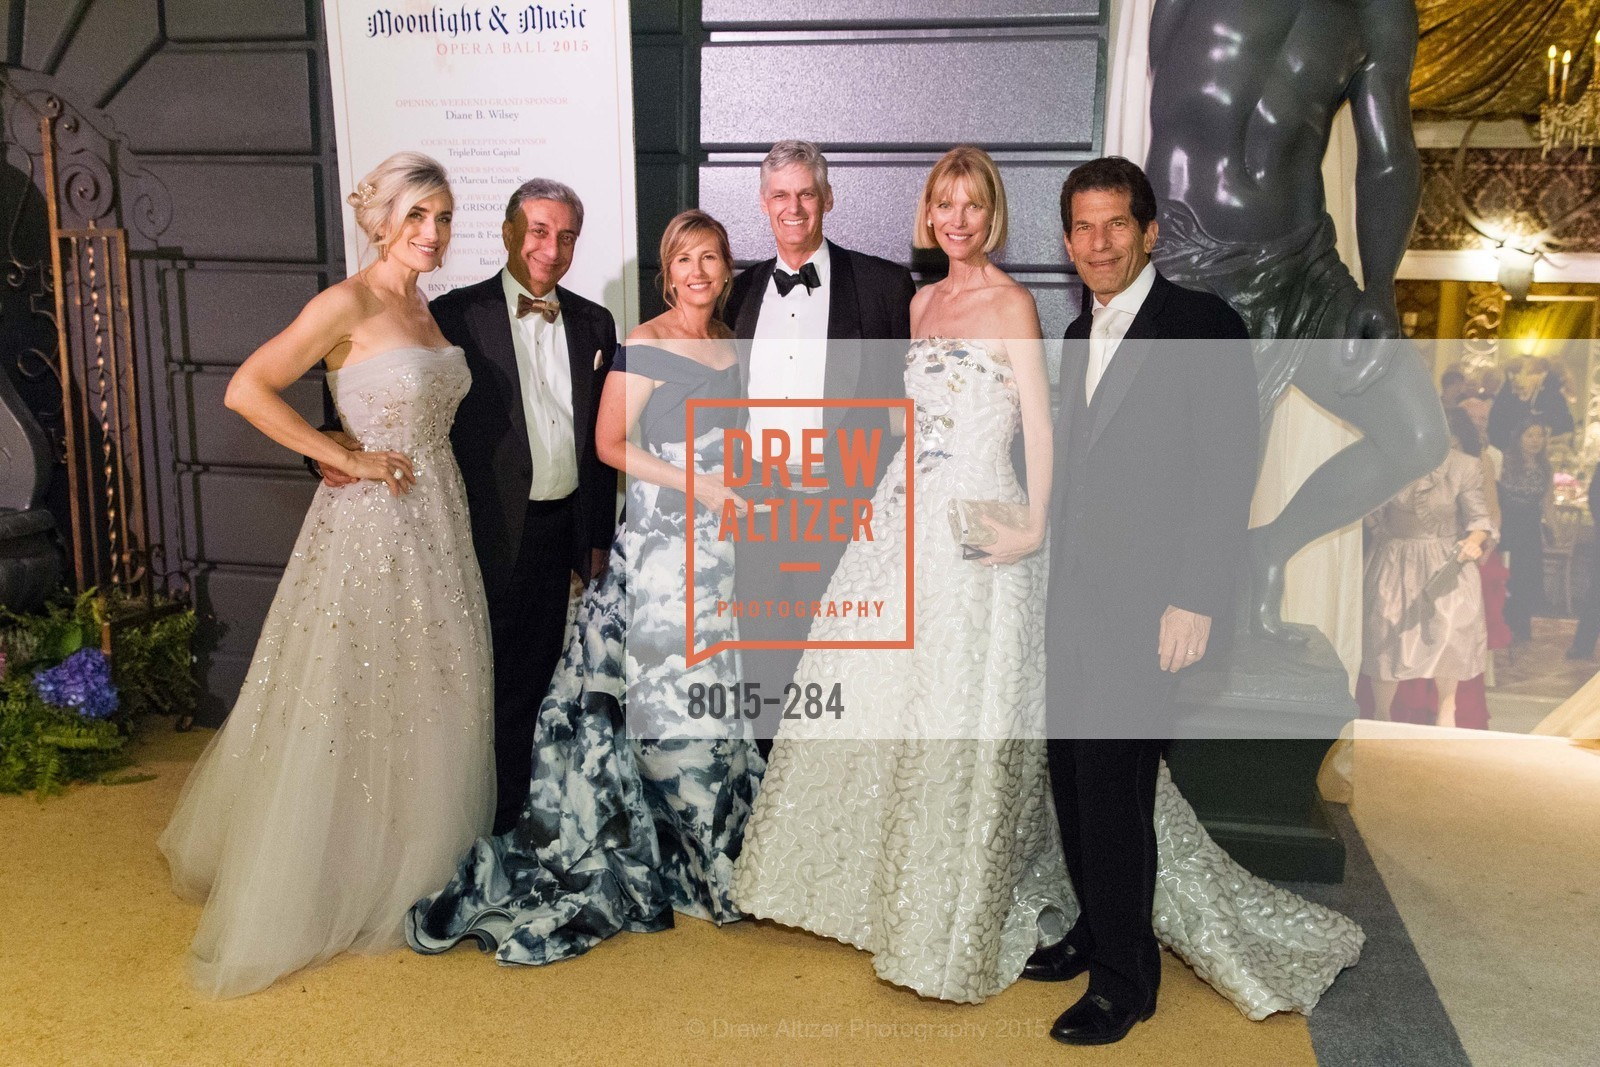 Renata Anderson, Raj Singh, Debbie Muller, David Barber, Karen Richardson, John Rubinstein, Opera Ball 2015: Moonlight & Music, War Memorial Opera House. 301 Van Ness Ave, September 11th, 2015,Drew Altizer, Drew Altizer Photography, full-service agency, private events, San Francisco photographer, photographer california